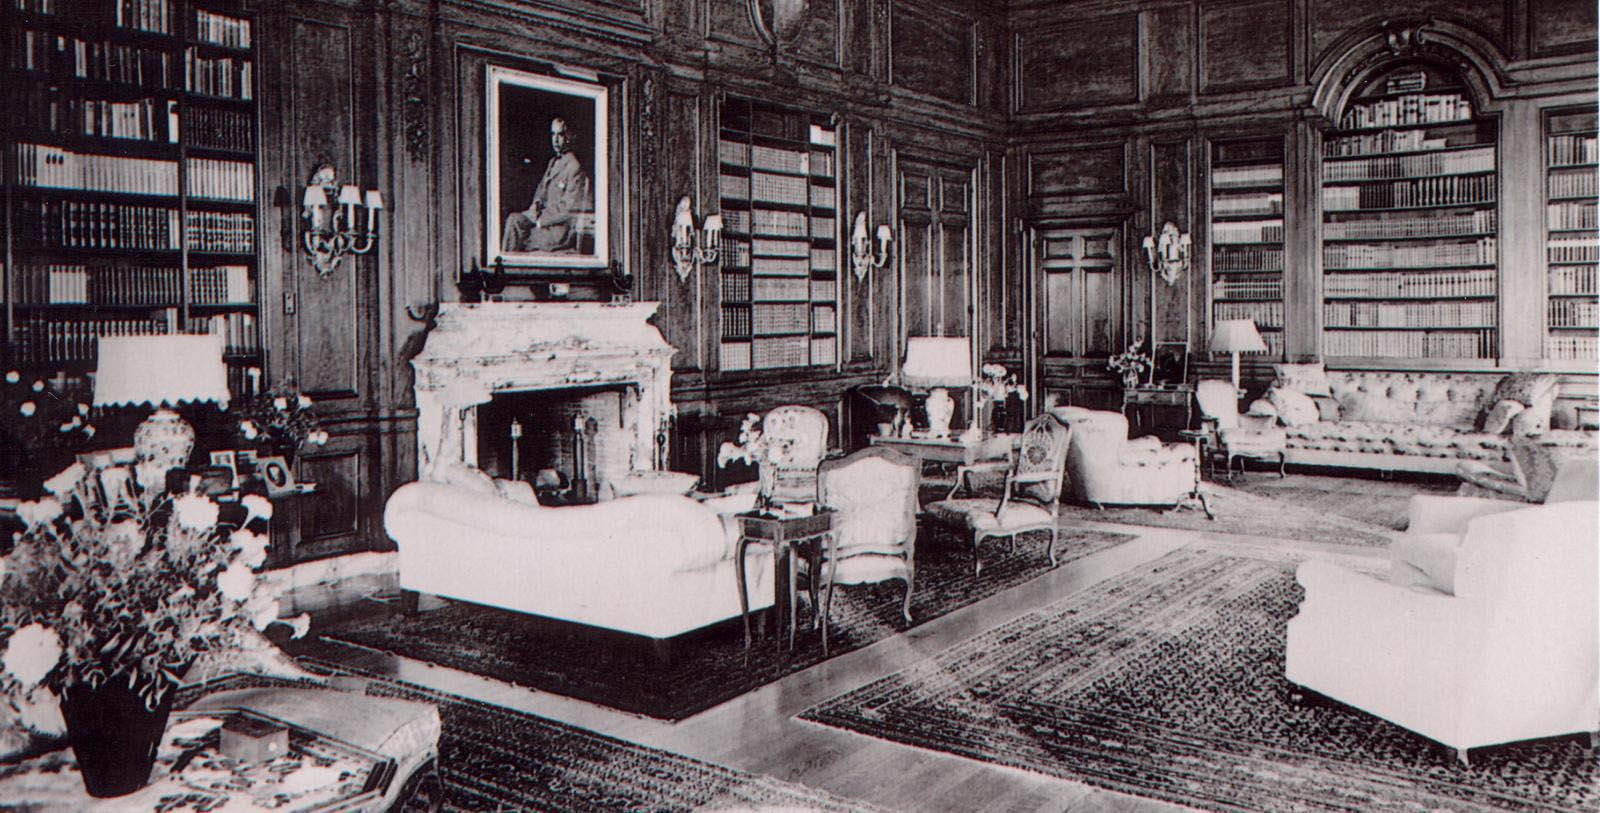 Image of Historic Interior, OHEKA CASTLE, Huntington, New York, 1919, Member of Historic Hotels of America, Discover